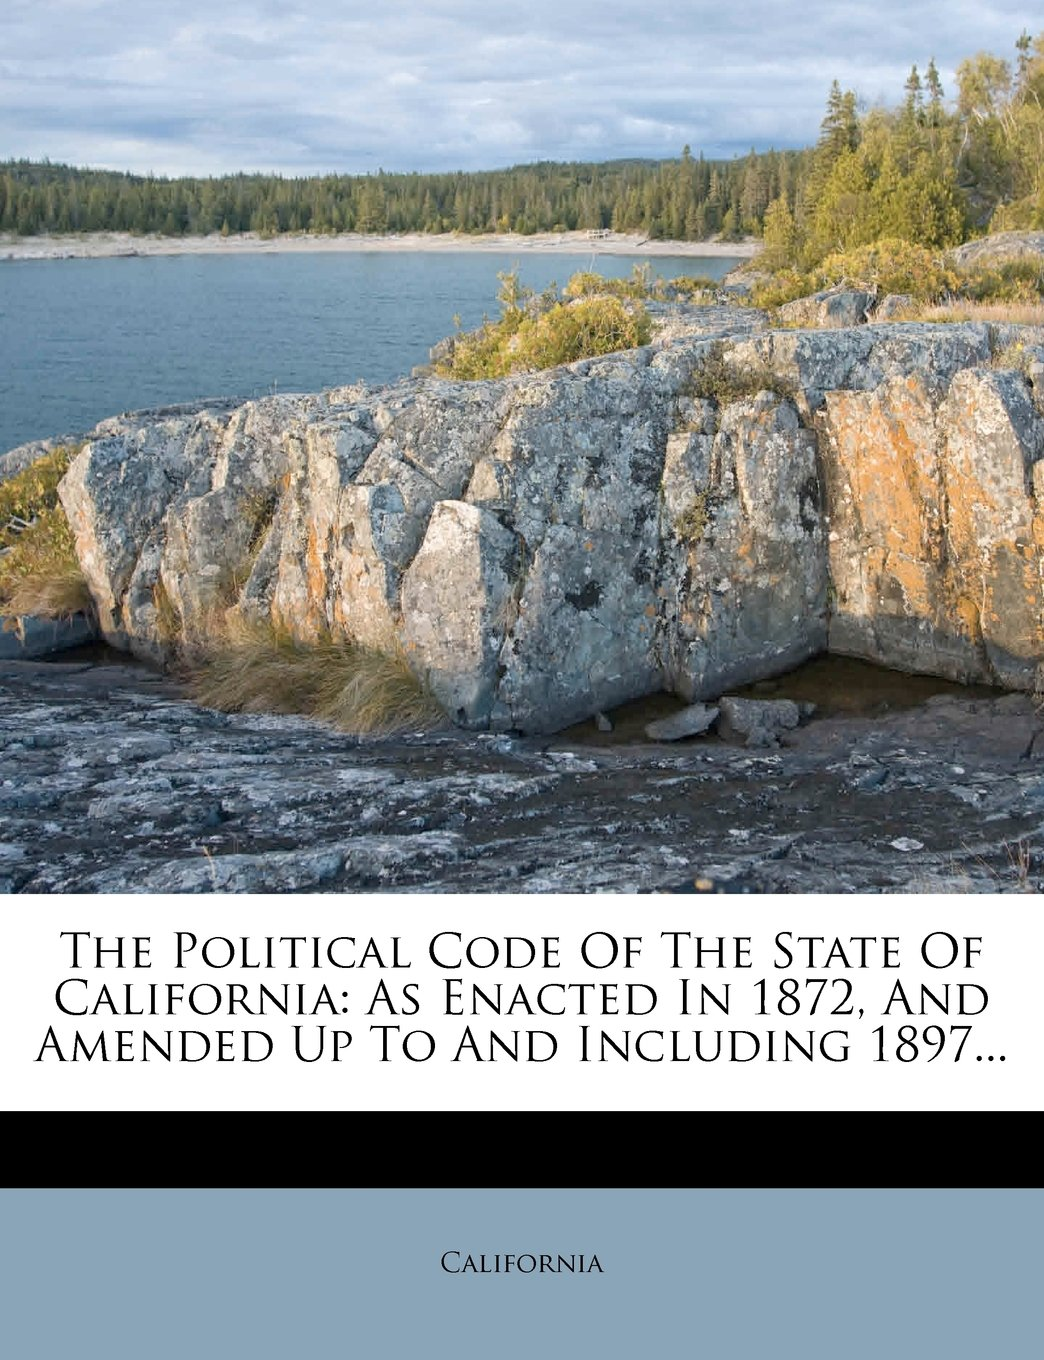 Download The Political Code Of The State Of California: As Enacted In 1872, And Amended Up To And Including 1897... ebook